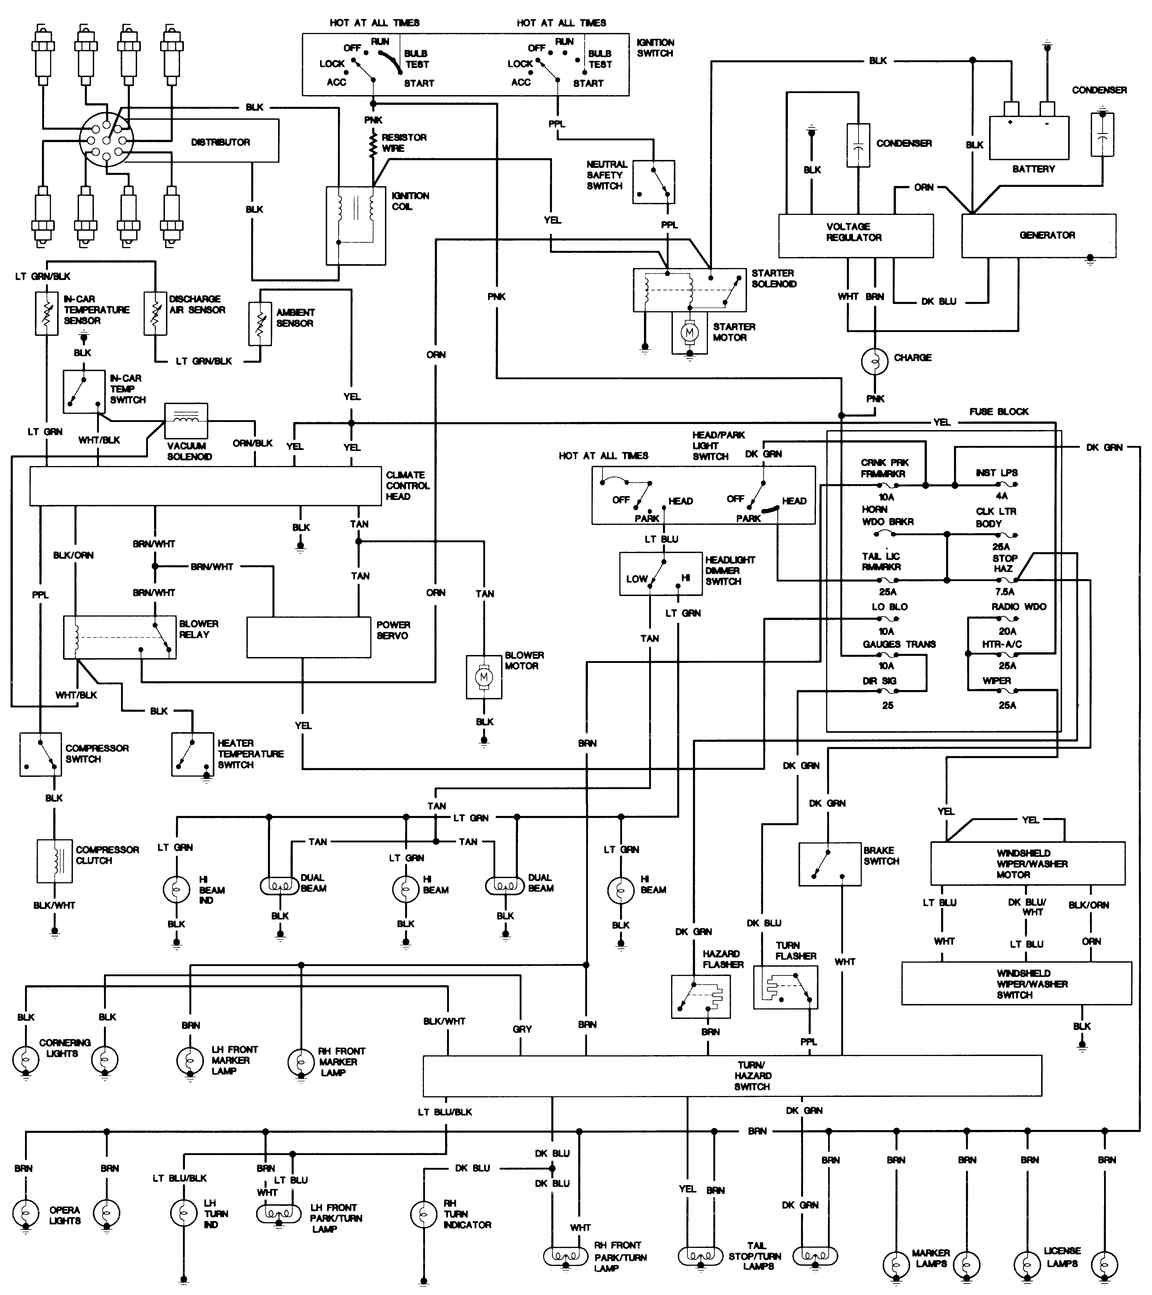 5 wire switch wiring diagram free download can we get a schematic of the vacumn hoses for my 1070 ...